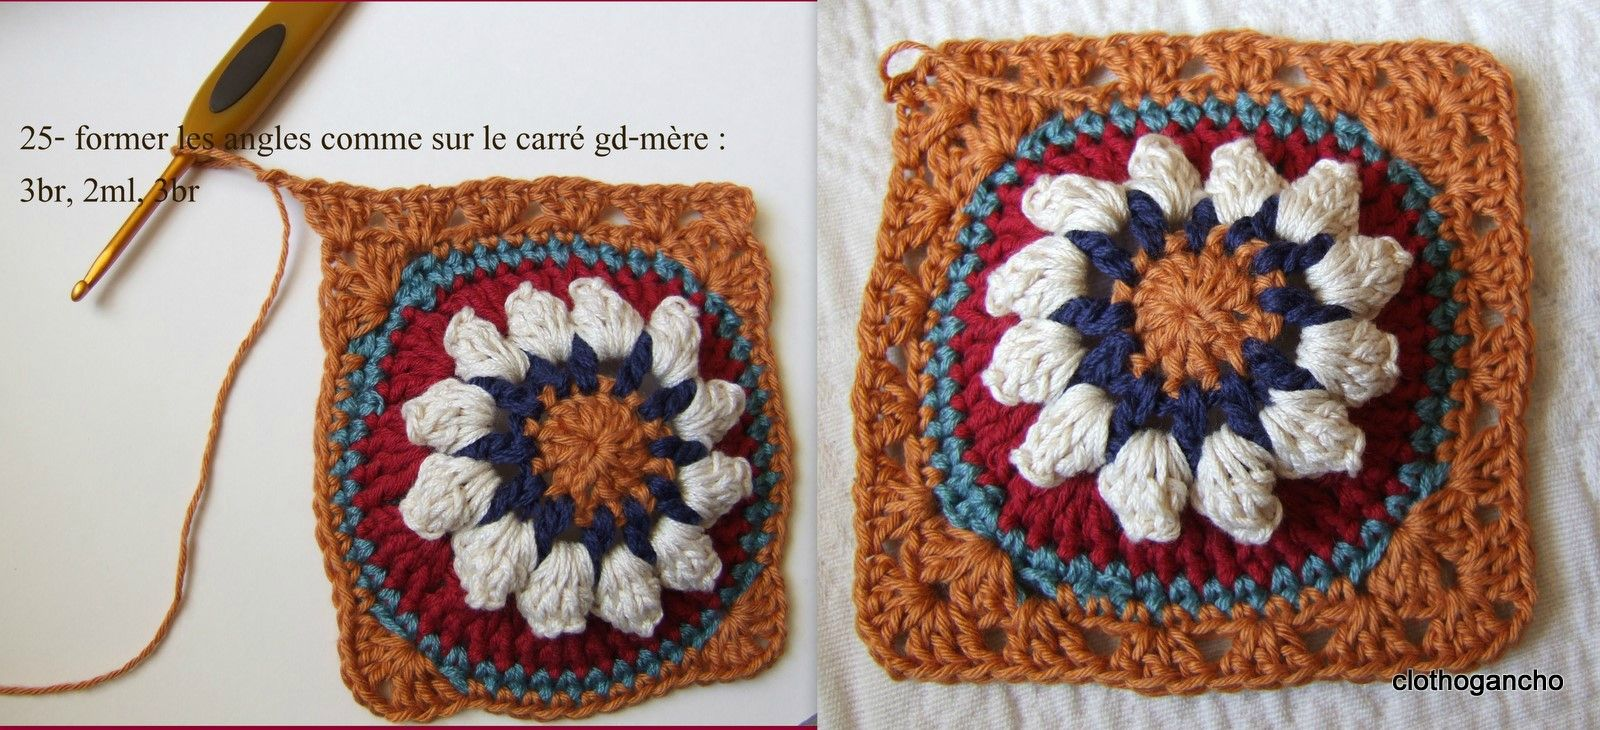 Bobble stitch granny square tutorial by clothogancho. In French with ...